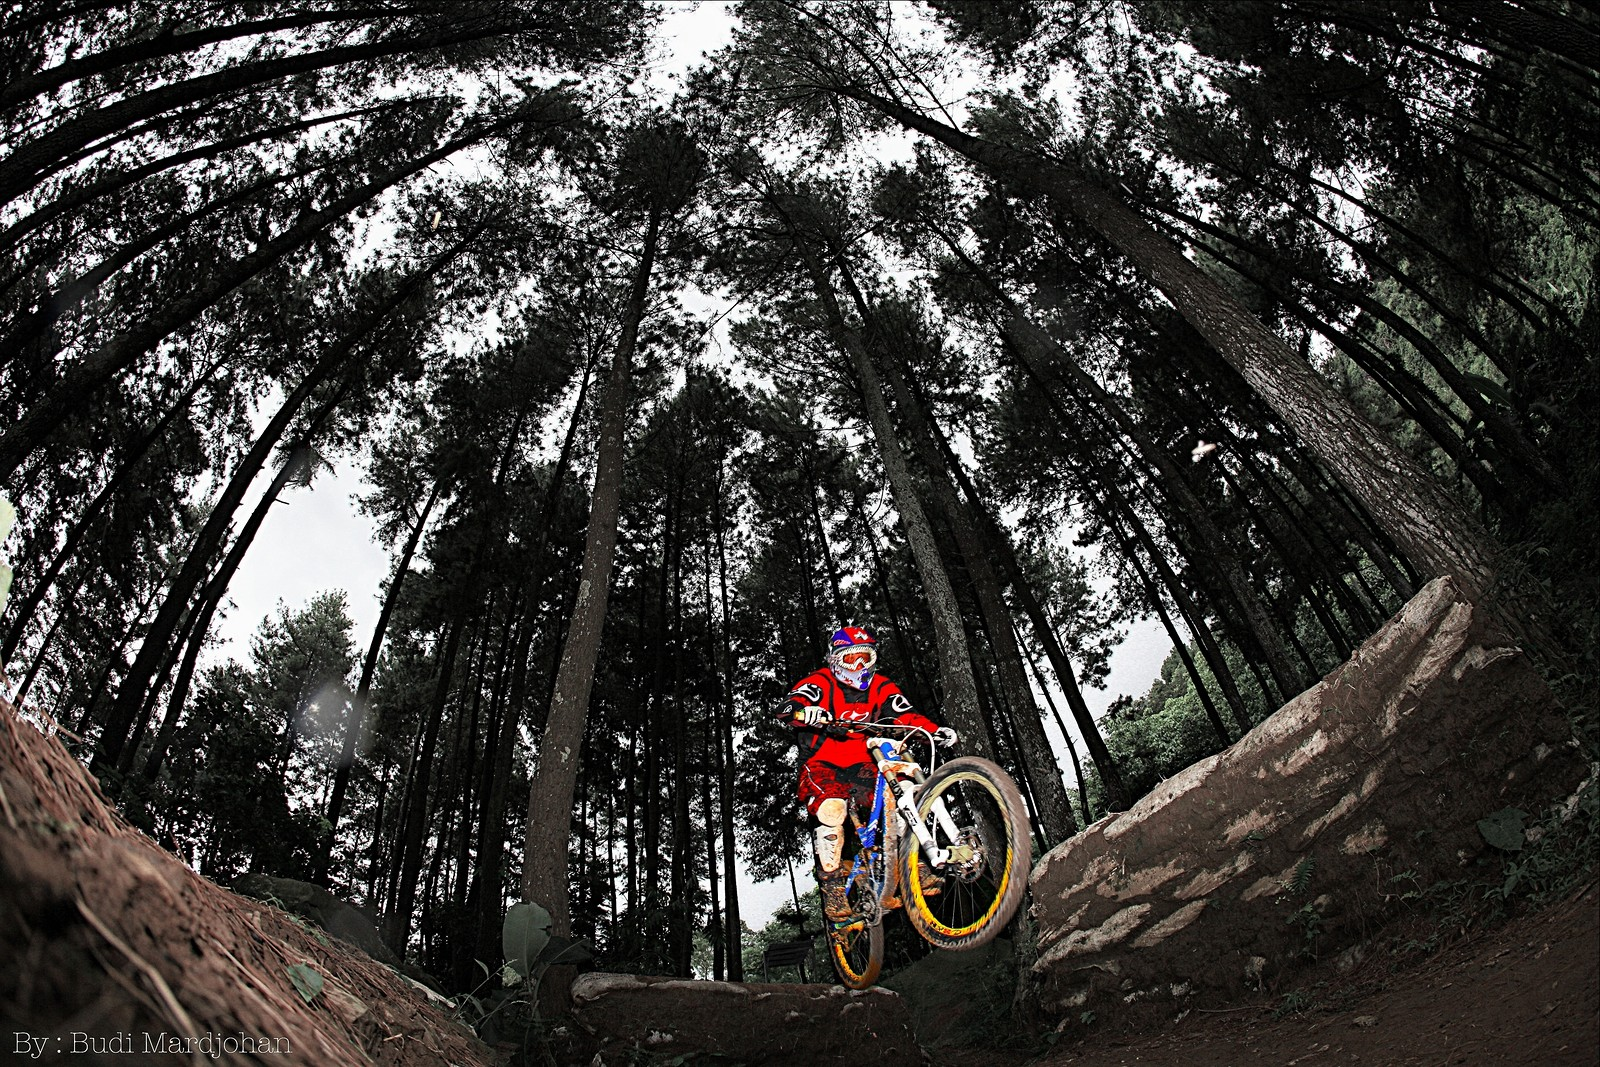 Sebex MTB DH Park Indonesia - budi - Mountain Biking Pictures - Vital MTB